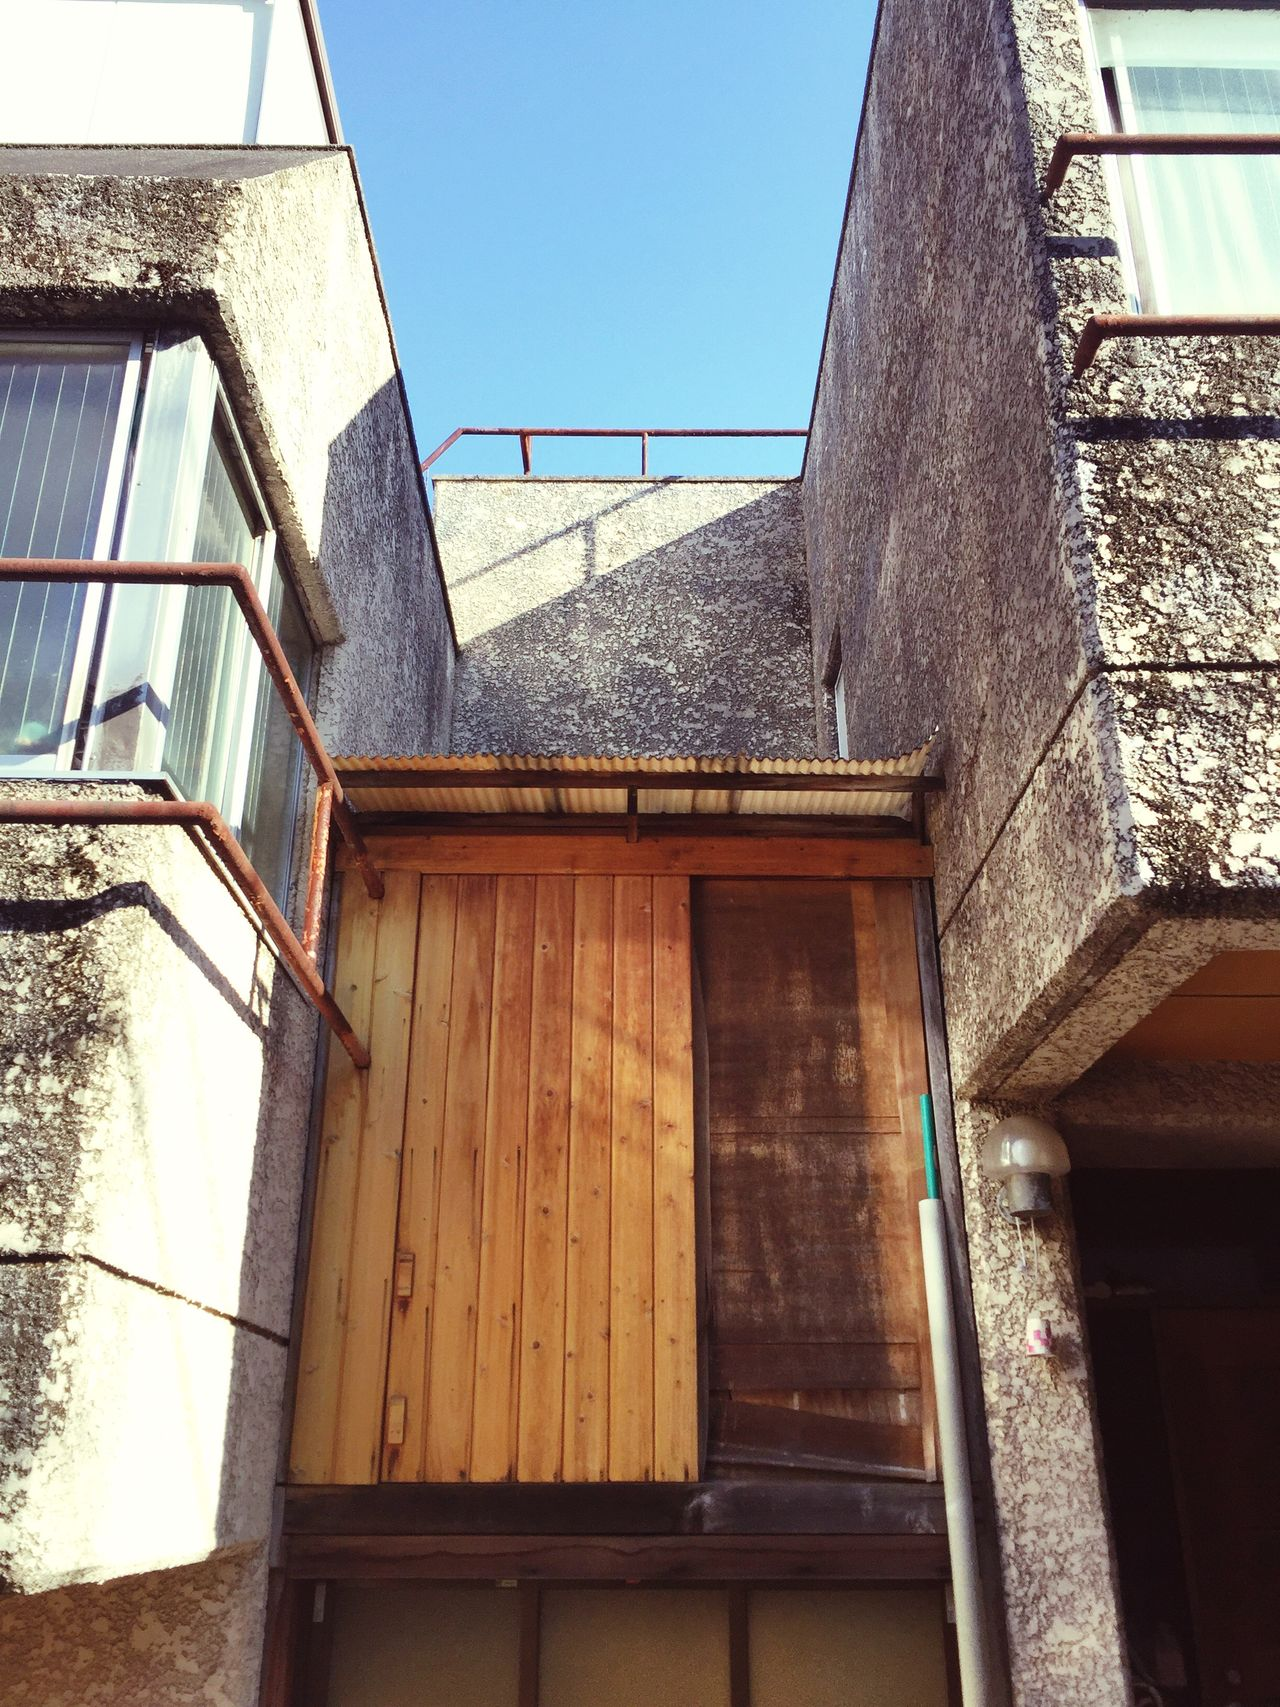 Tokyo Architectural Building Exterior Architecture Built Structure House Window Low Angle View No People Residential Building Outdoors Clear Sky Day Balcony Sky Wooden Door Textures And Surfaces Rustic Style Tokyo Architecture